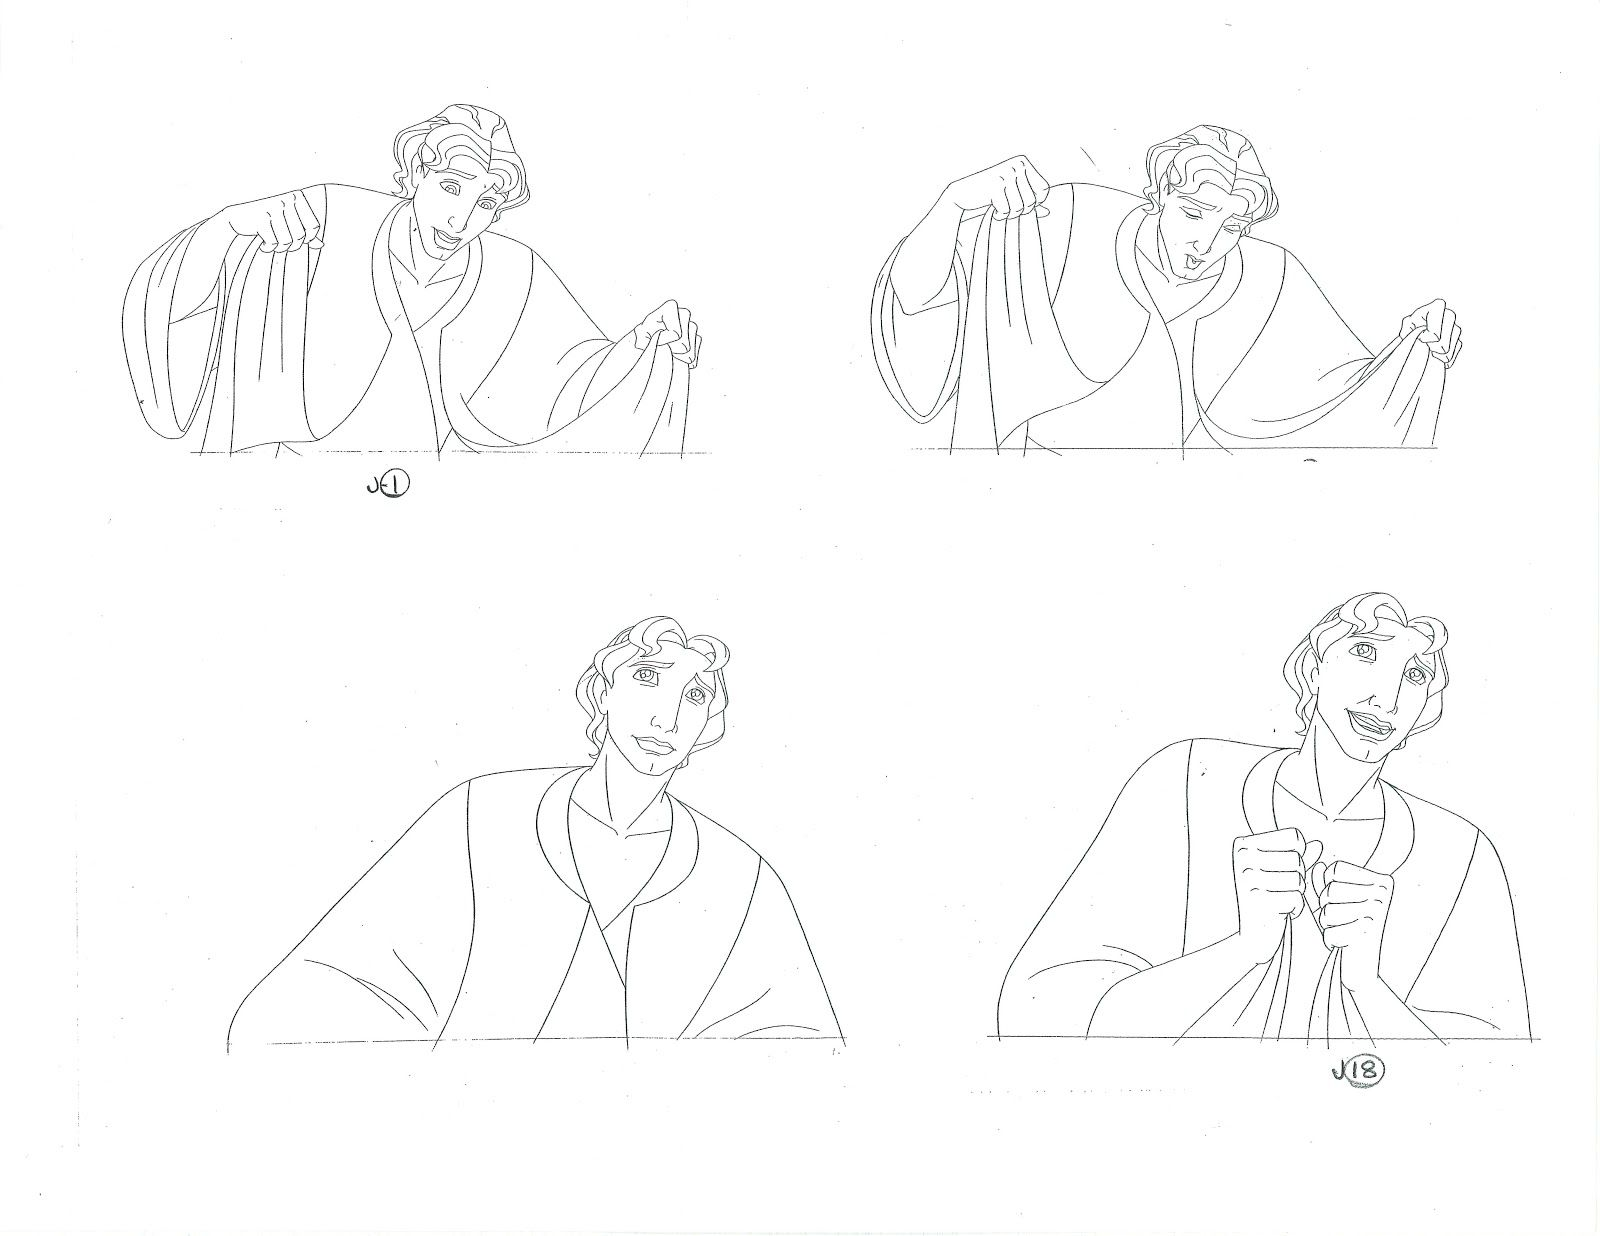 joseph king of dreams coloring pages   joseph king of dreams - Google Search   ♥ DreamWorks ...